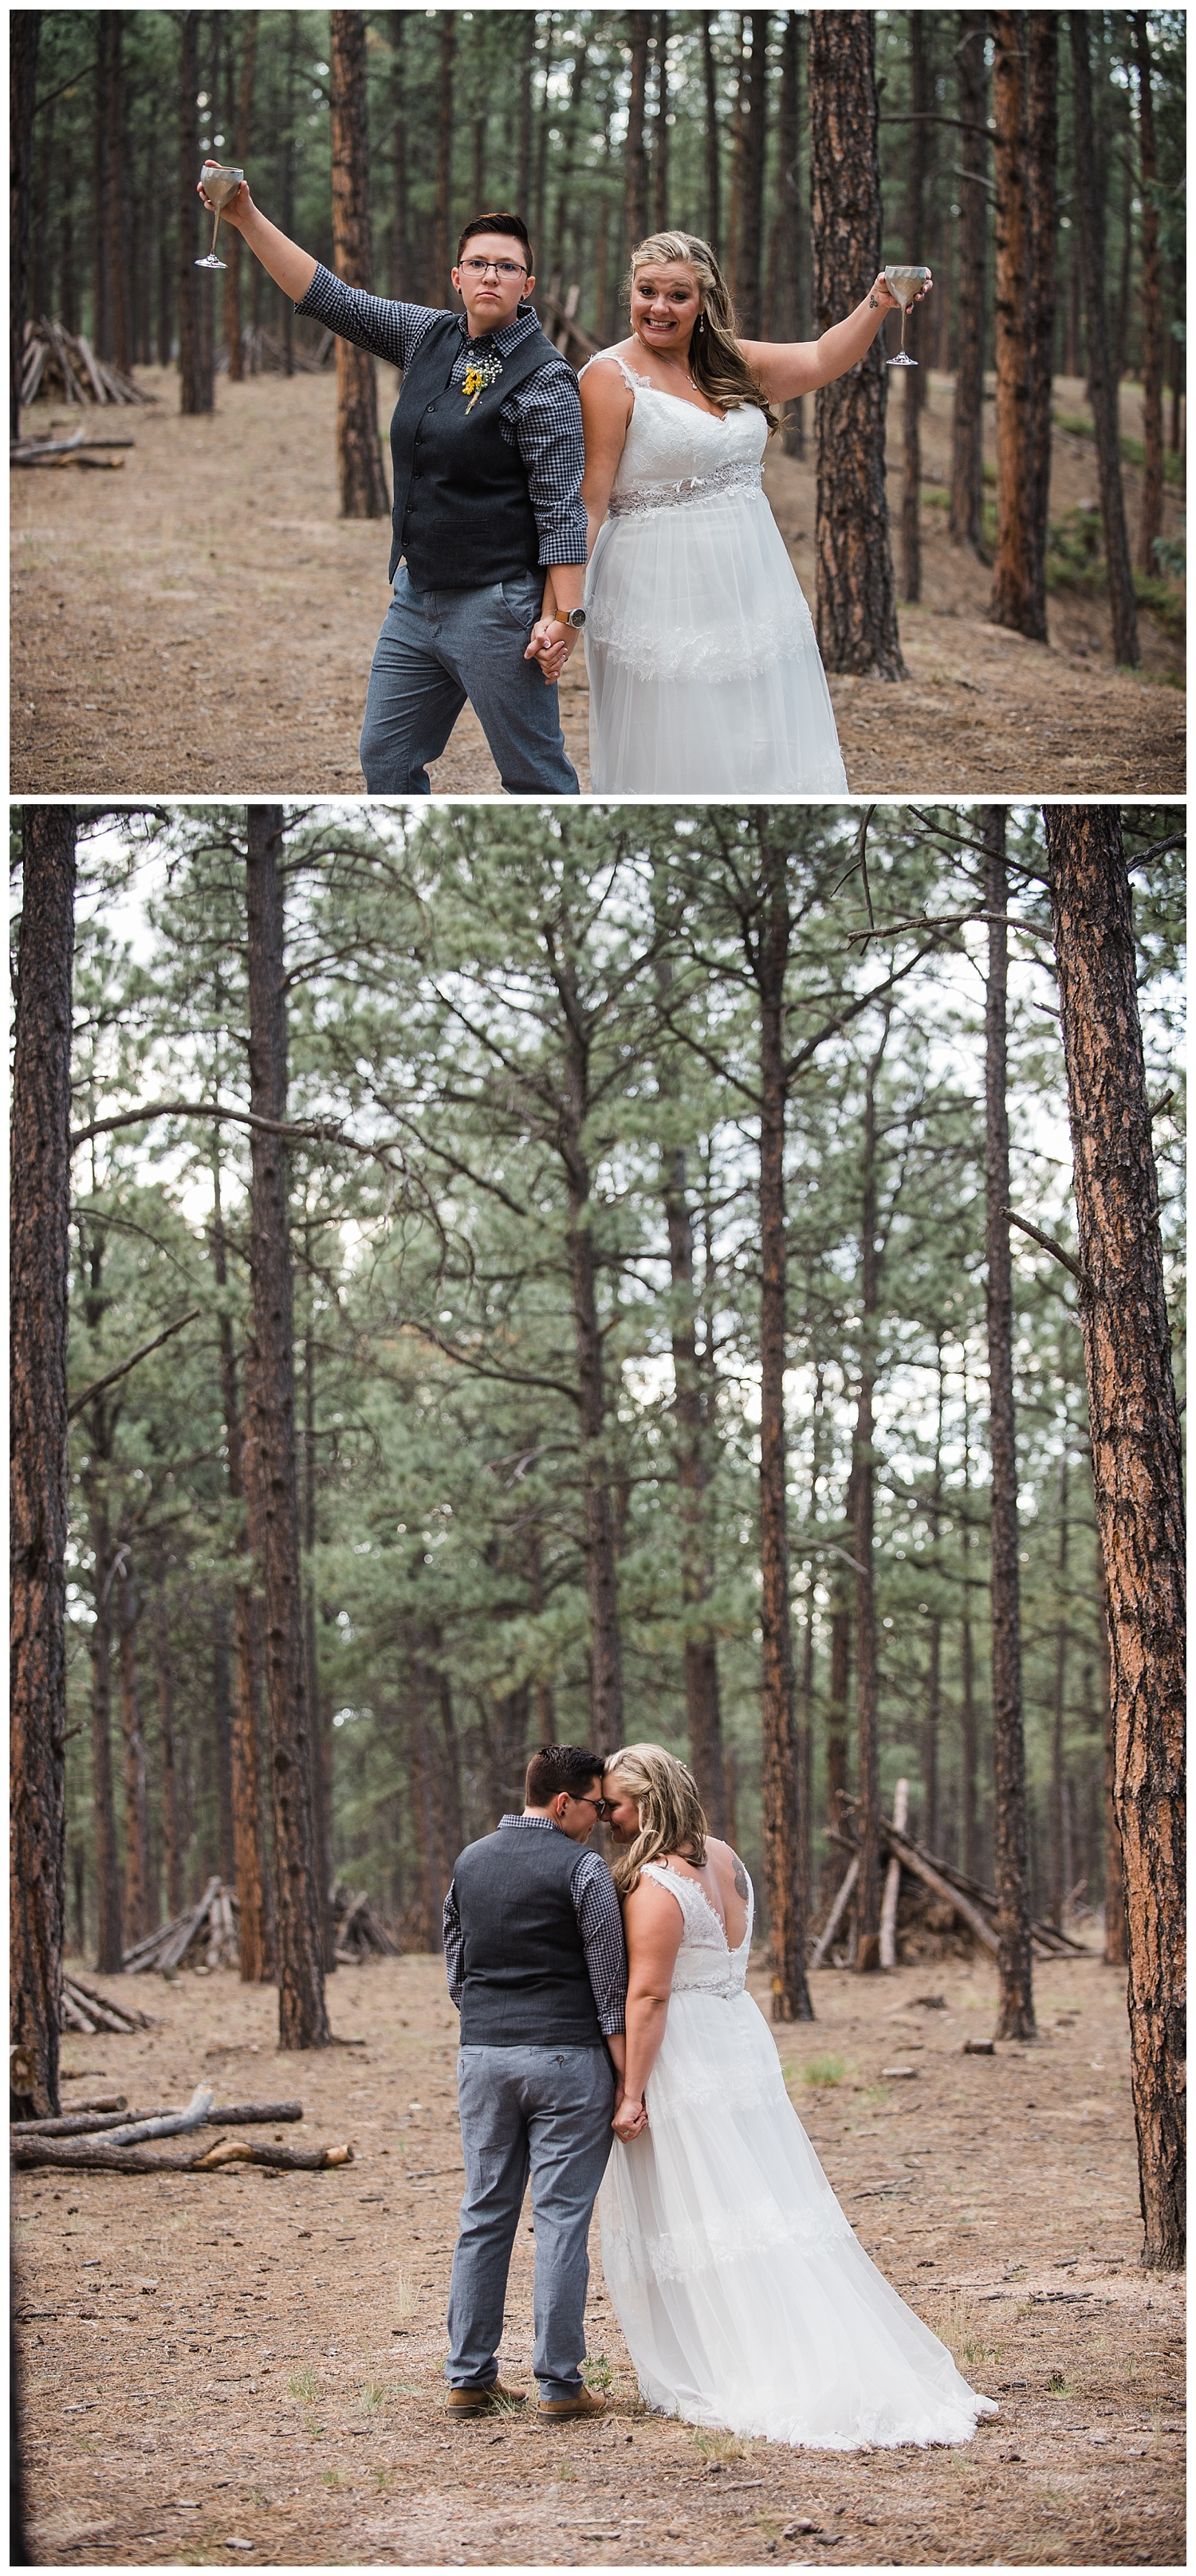 La_Floret_Wedding_Venue_CO_Springs_Colorado_Weddings_Apollo_Fields_028.jpg